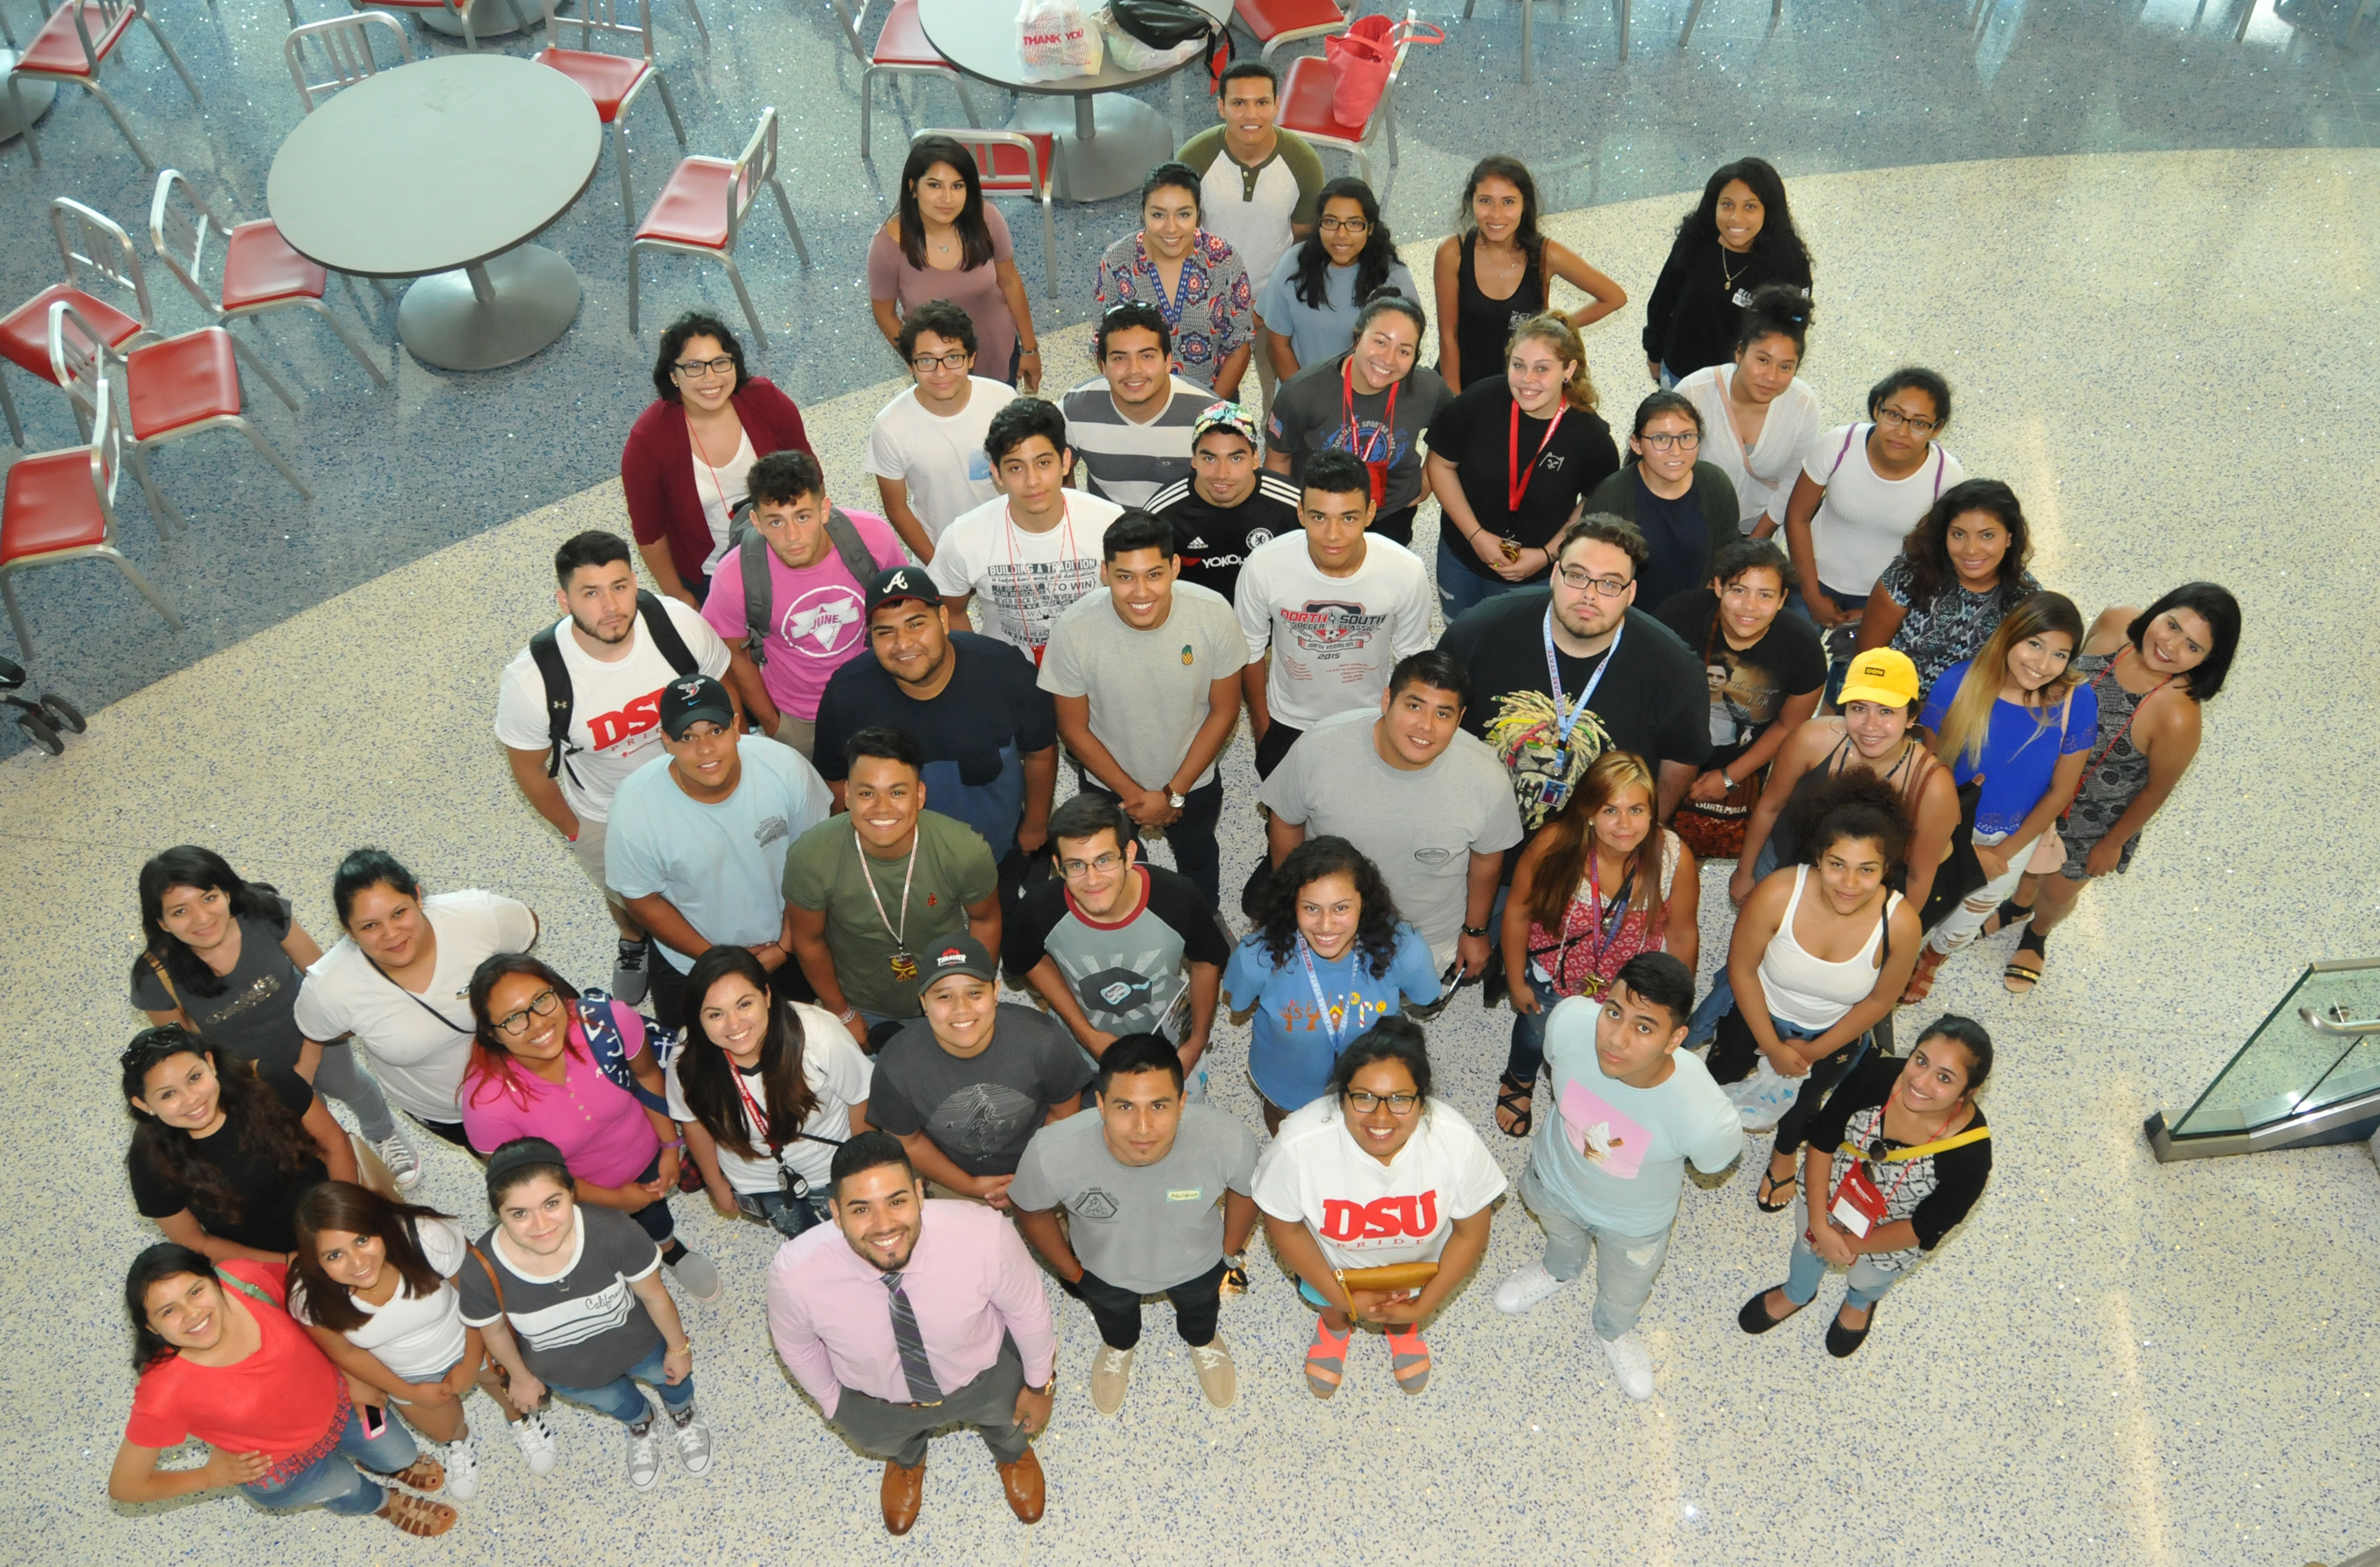 """A new group of """"Dreamers"""" -- undocumented immigrant students who have enrolled at DSU under the Opportunity Scholarship Program -- have begun their academic journey at Del State."""